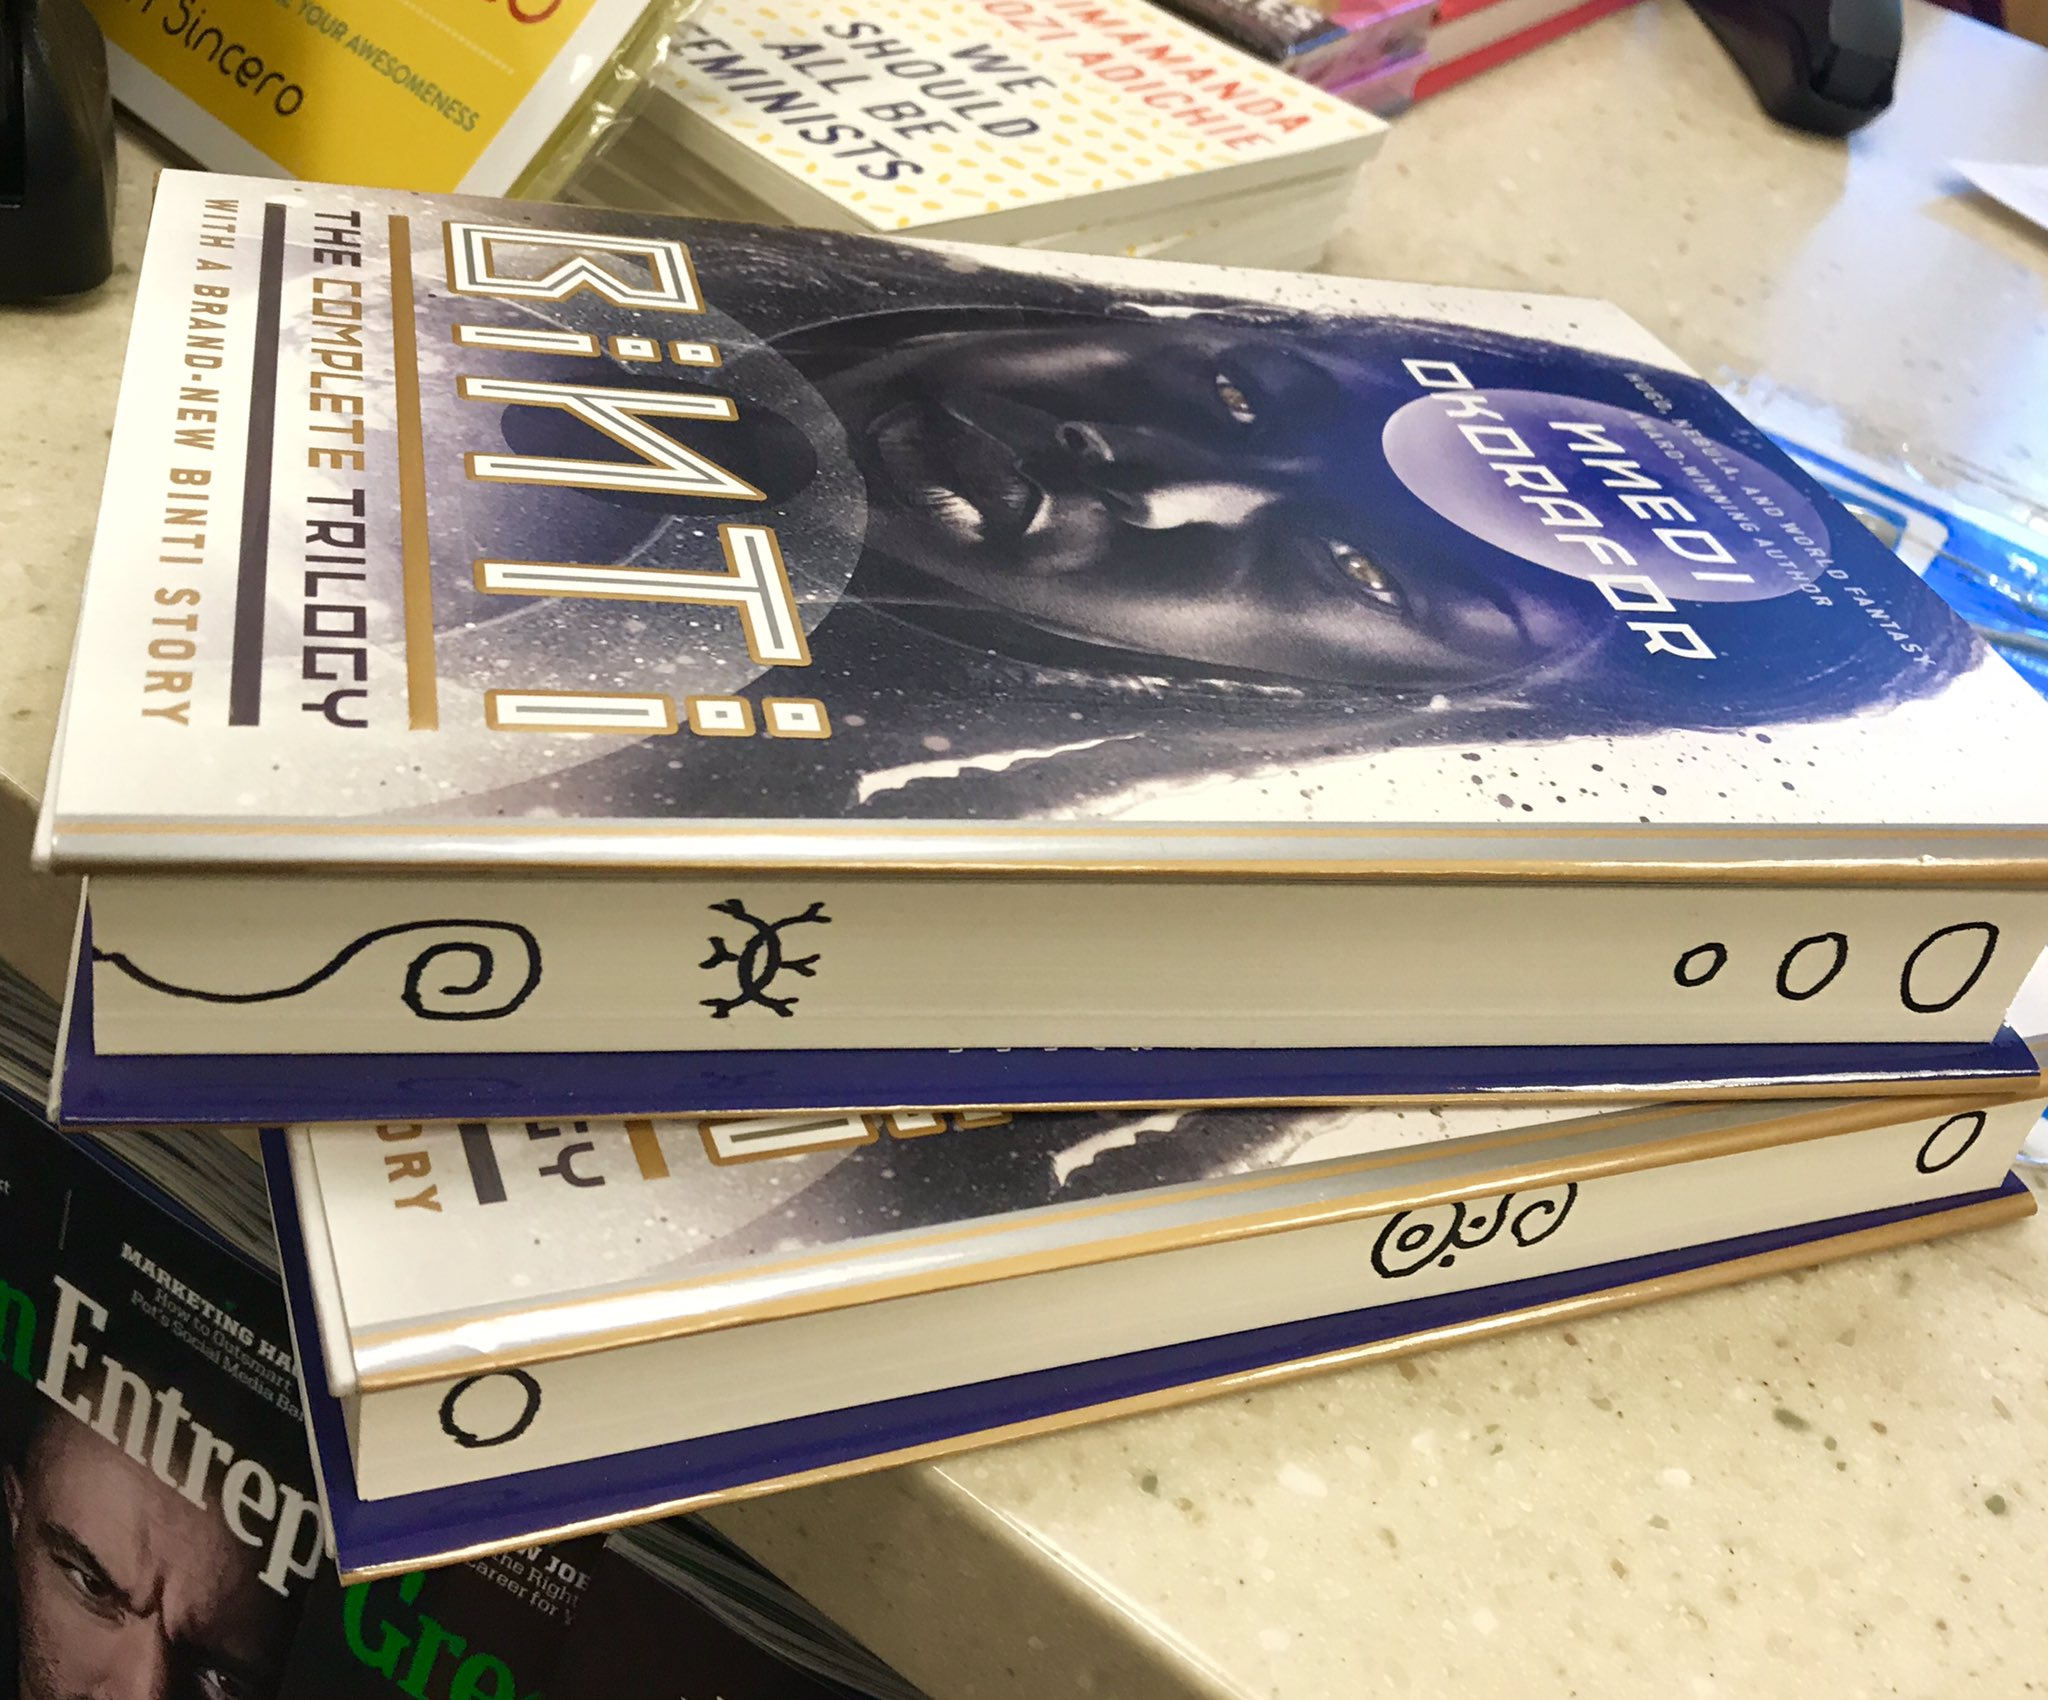 Just guerrilla-signed these two Binti omnibus copies at Barbera's Bookstore (terminal 2) at O'Hare Airport. 😊 https://t.co/XoD58JAspN